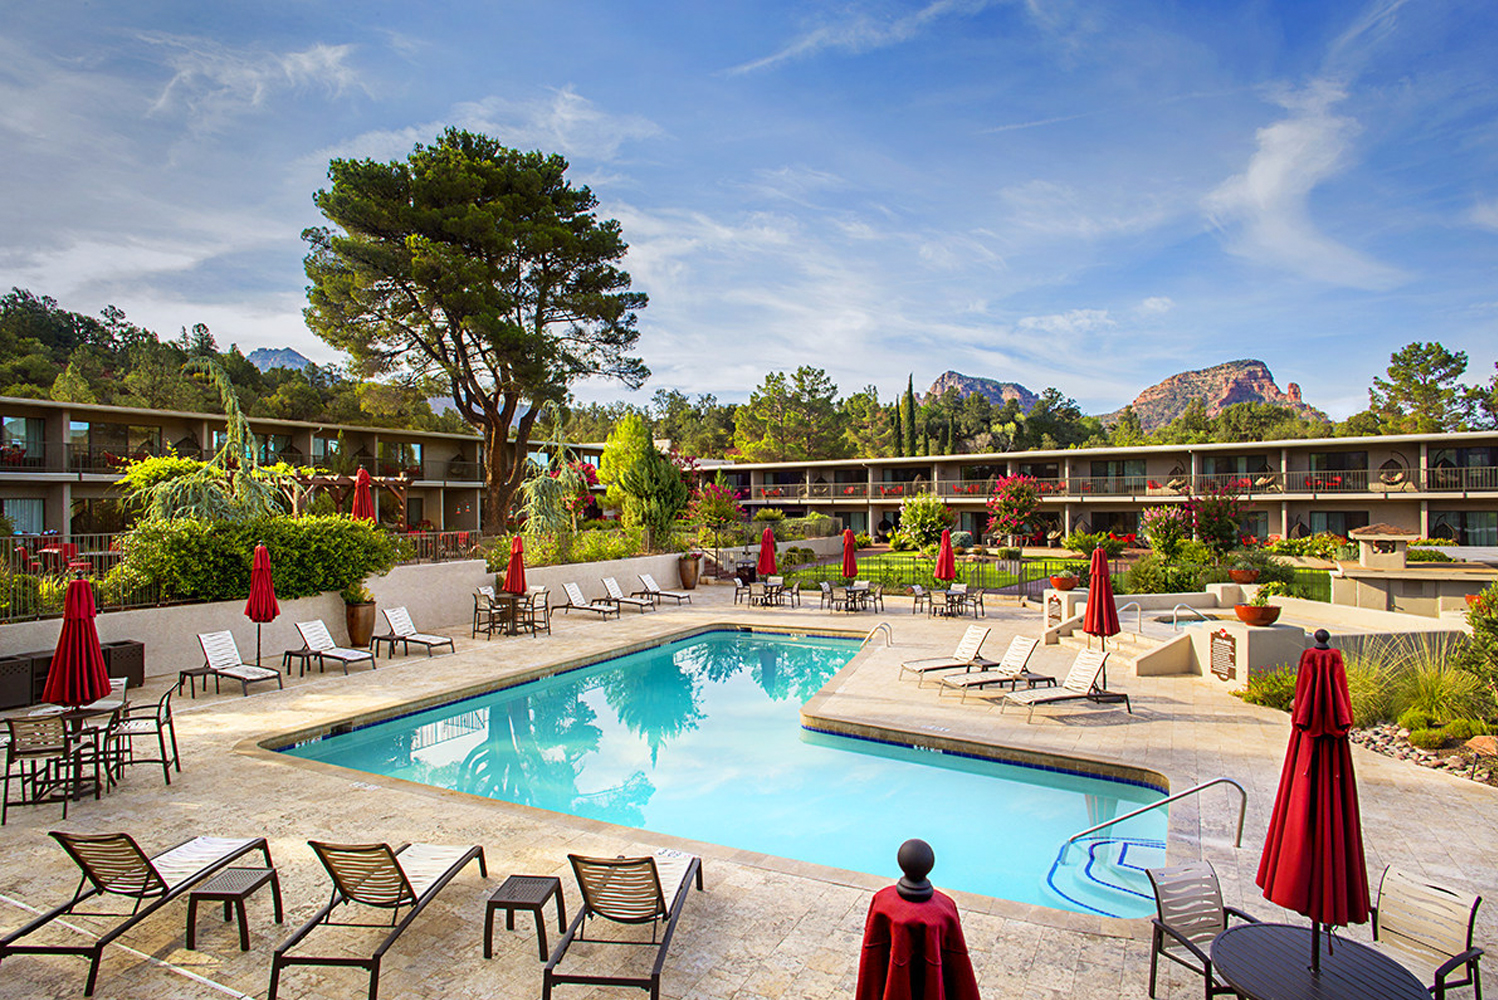 Arabella Hotel – a property located within eight acres of Sedona, Arizona – underwent a $4 million property-wide renovation.